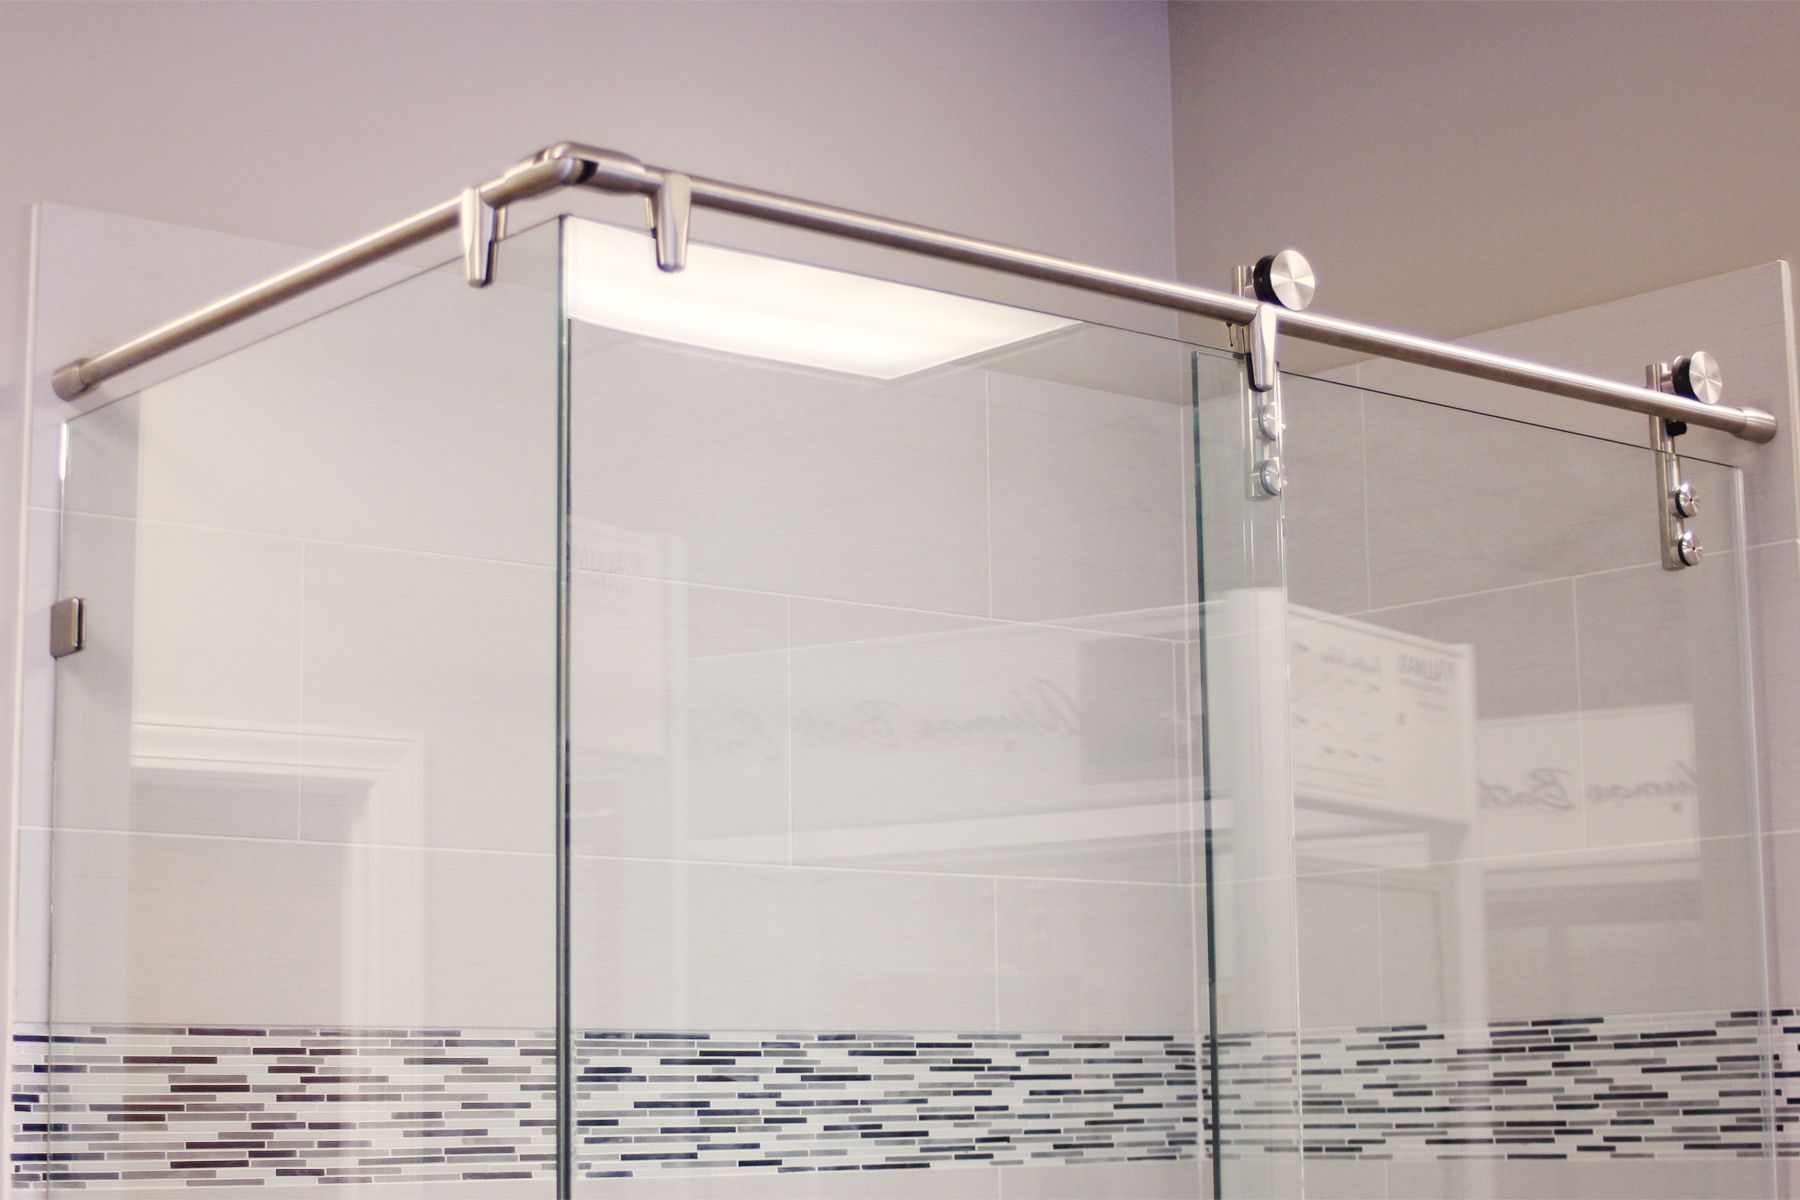 Custom Shower Doors by Columbia Shelving and Mirror in Columbia SC & Custom Shower Doors by Columbia Shelving and Mirror in Columbia ... Pezcame.Com